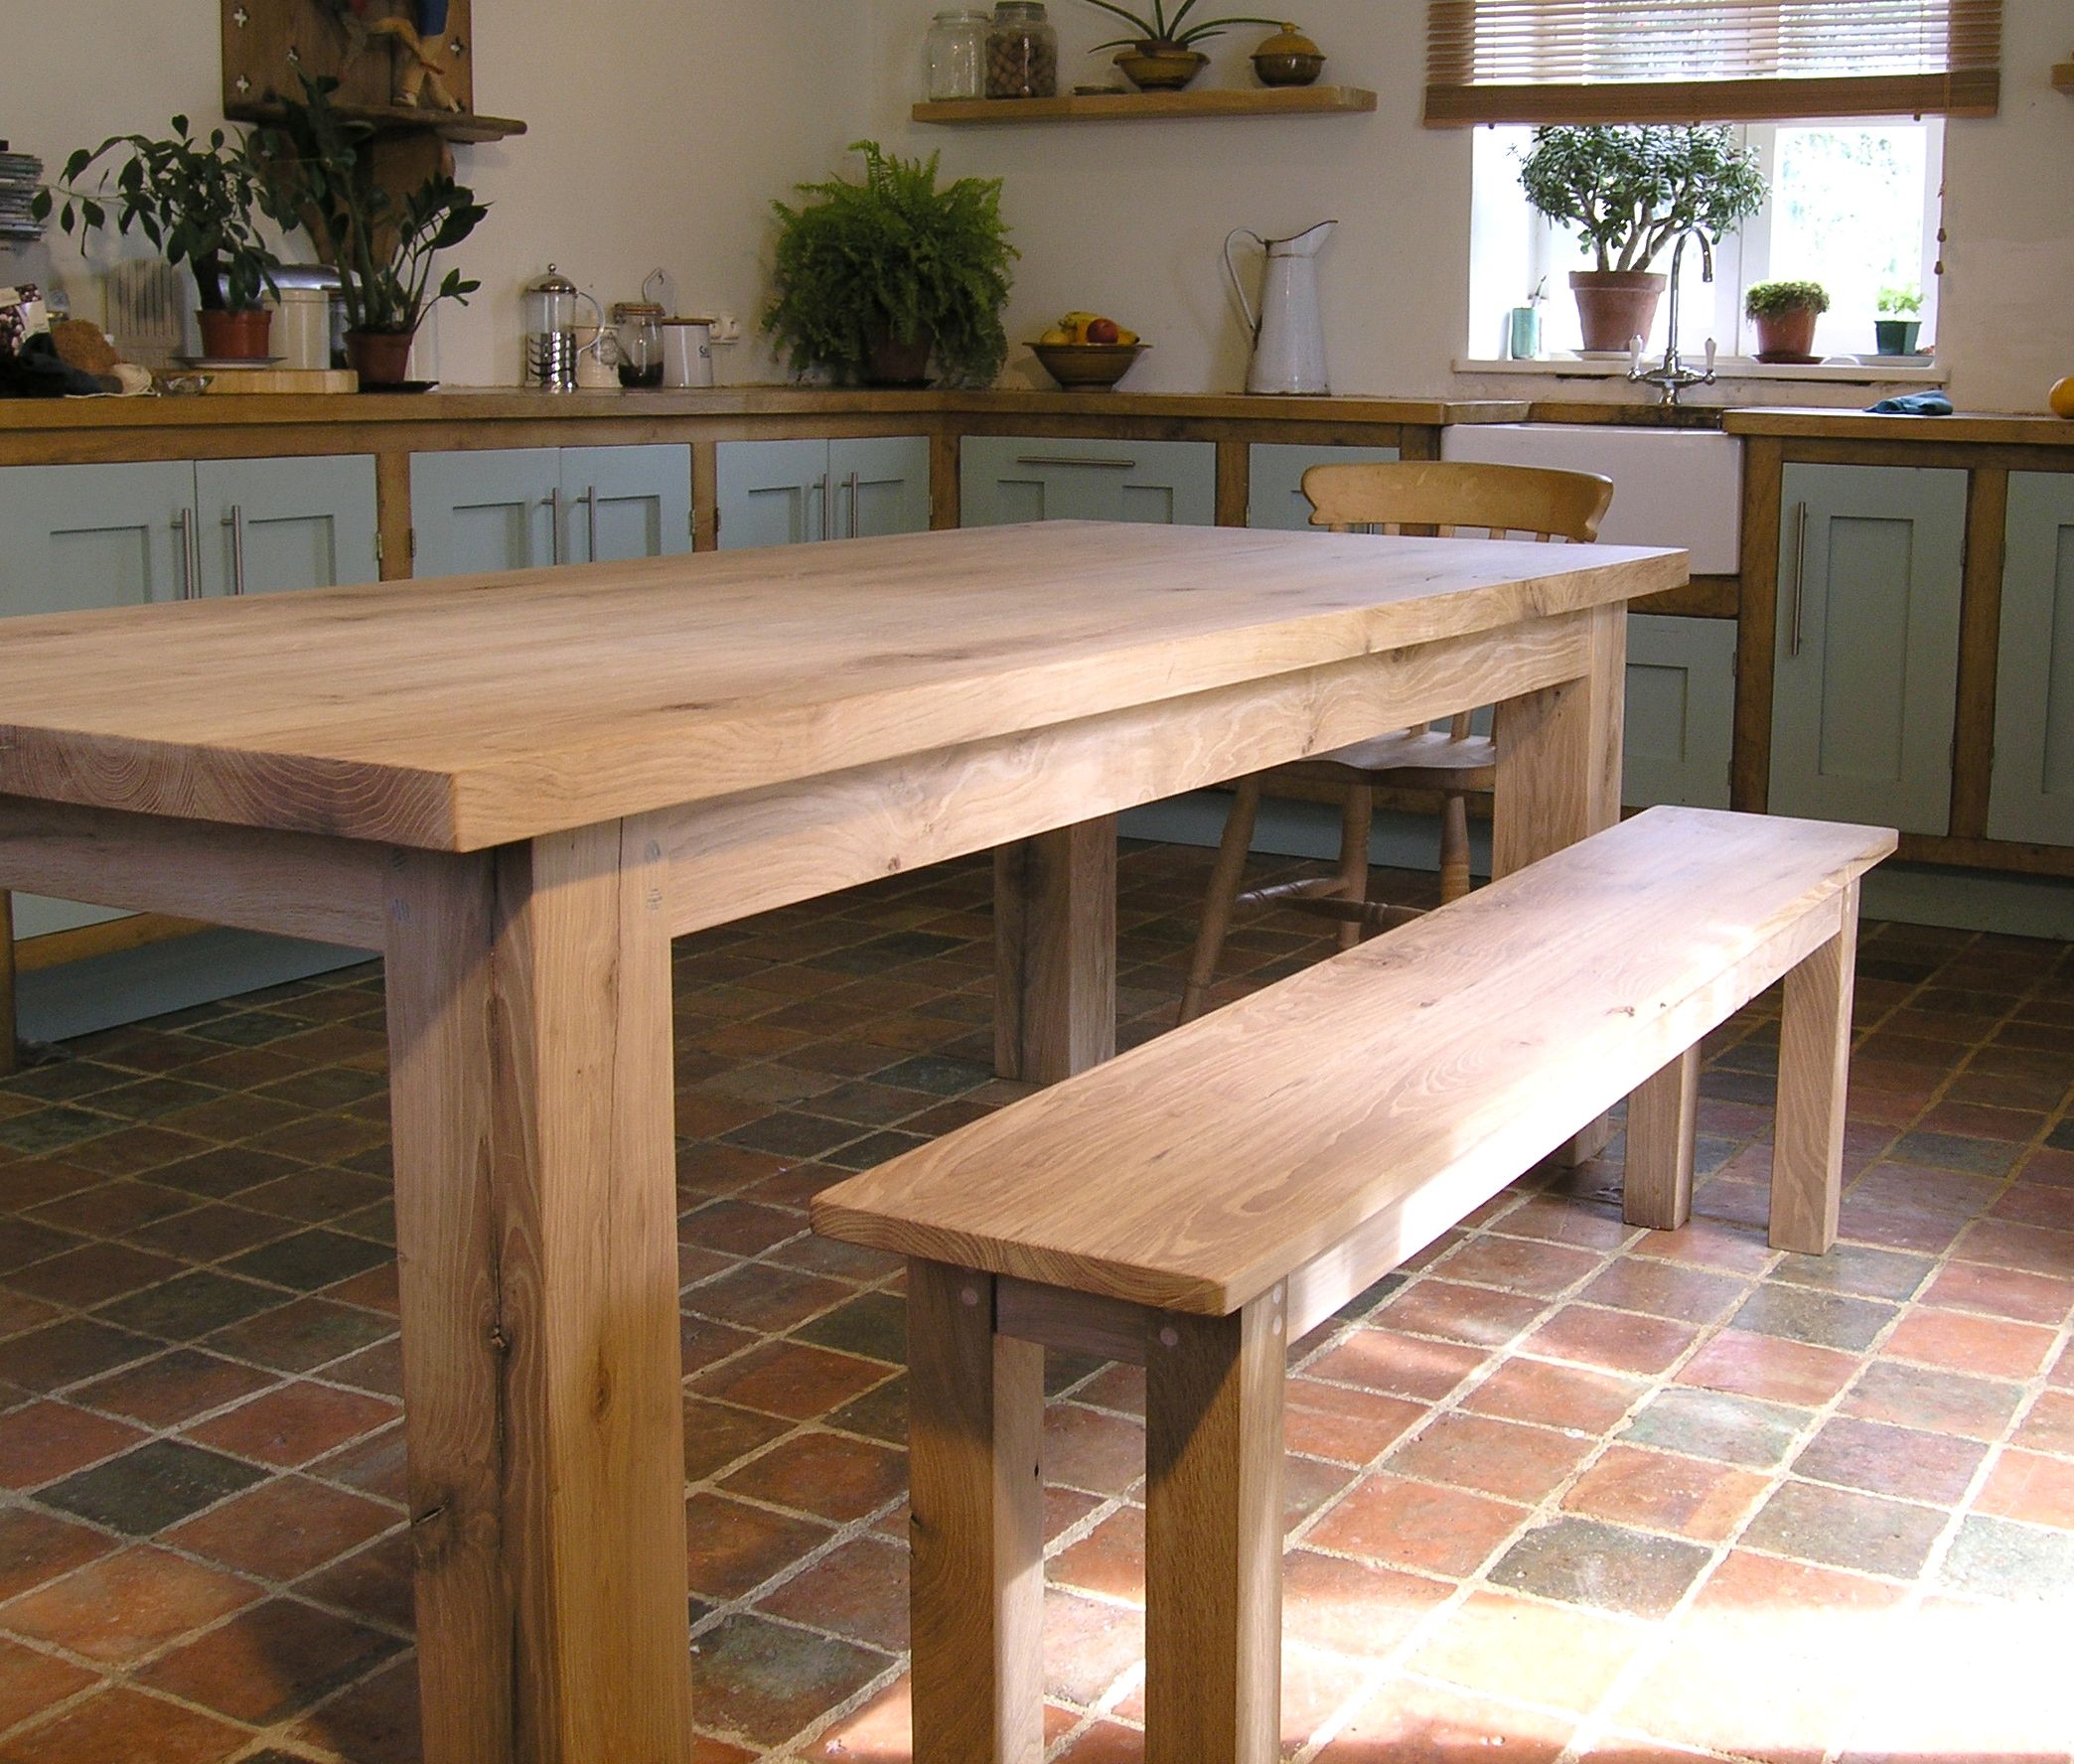 Large Centrally Supported Dining Table Handmade From American Oak